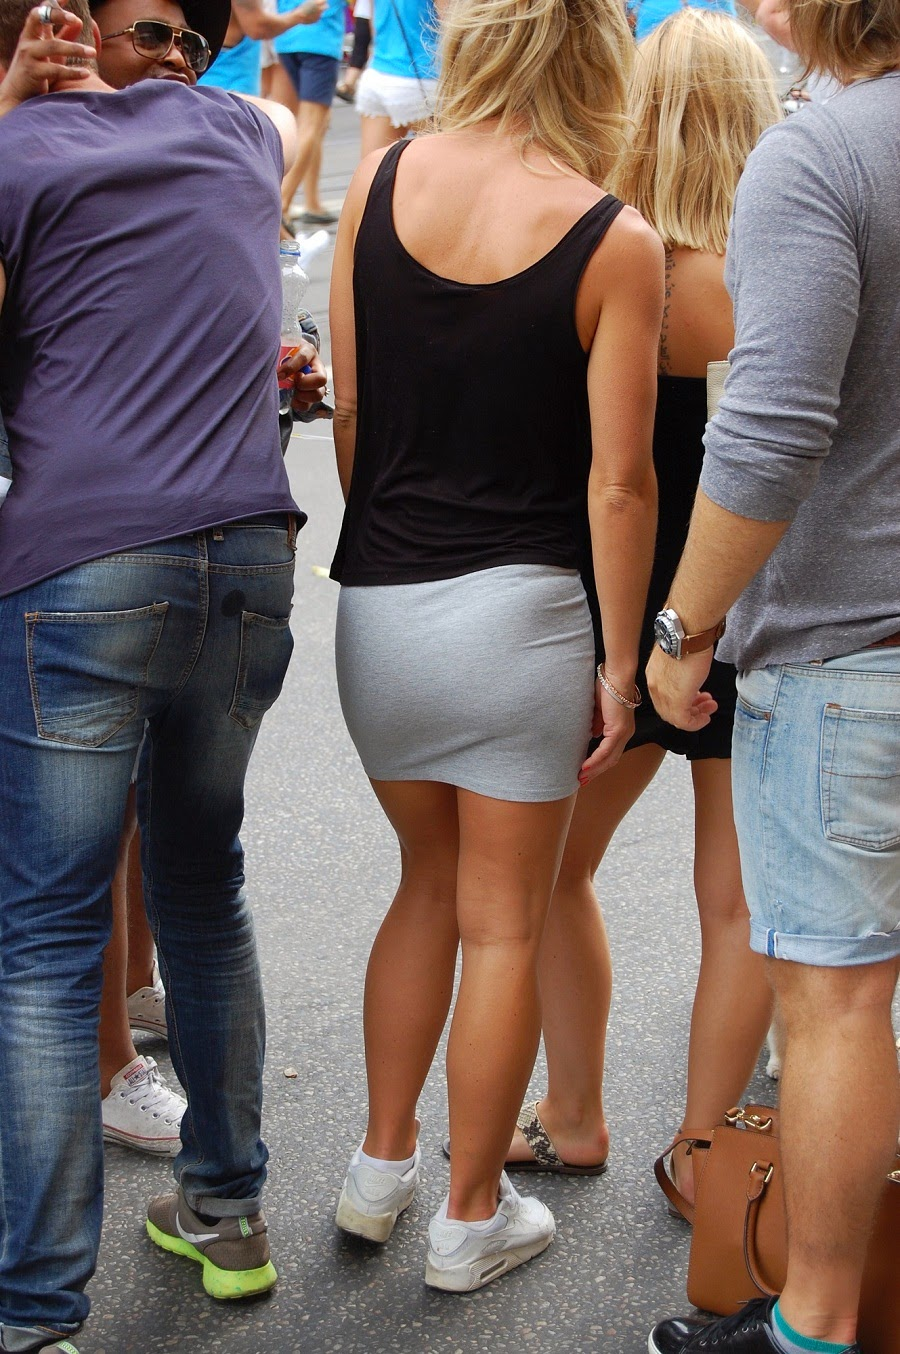 Sexy Girls On The Street, Girls In Jeans, Spandex And -7830